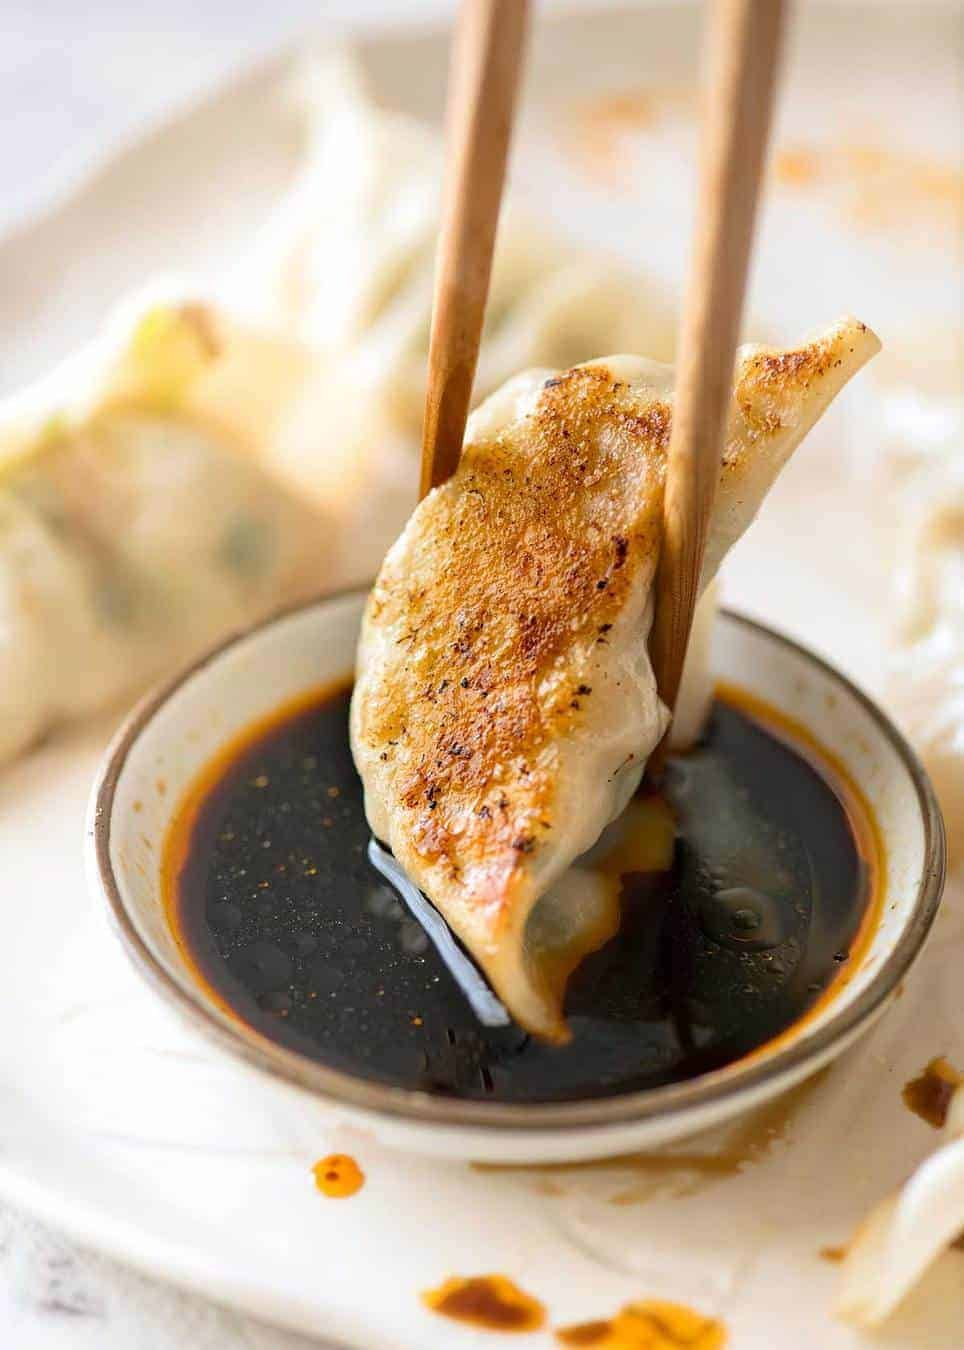 Potstickers Recipe With Images Recipetin Eats Pan Fried